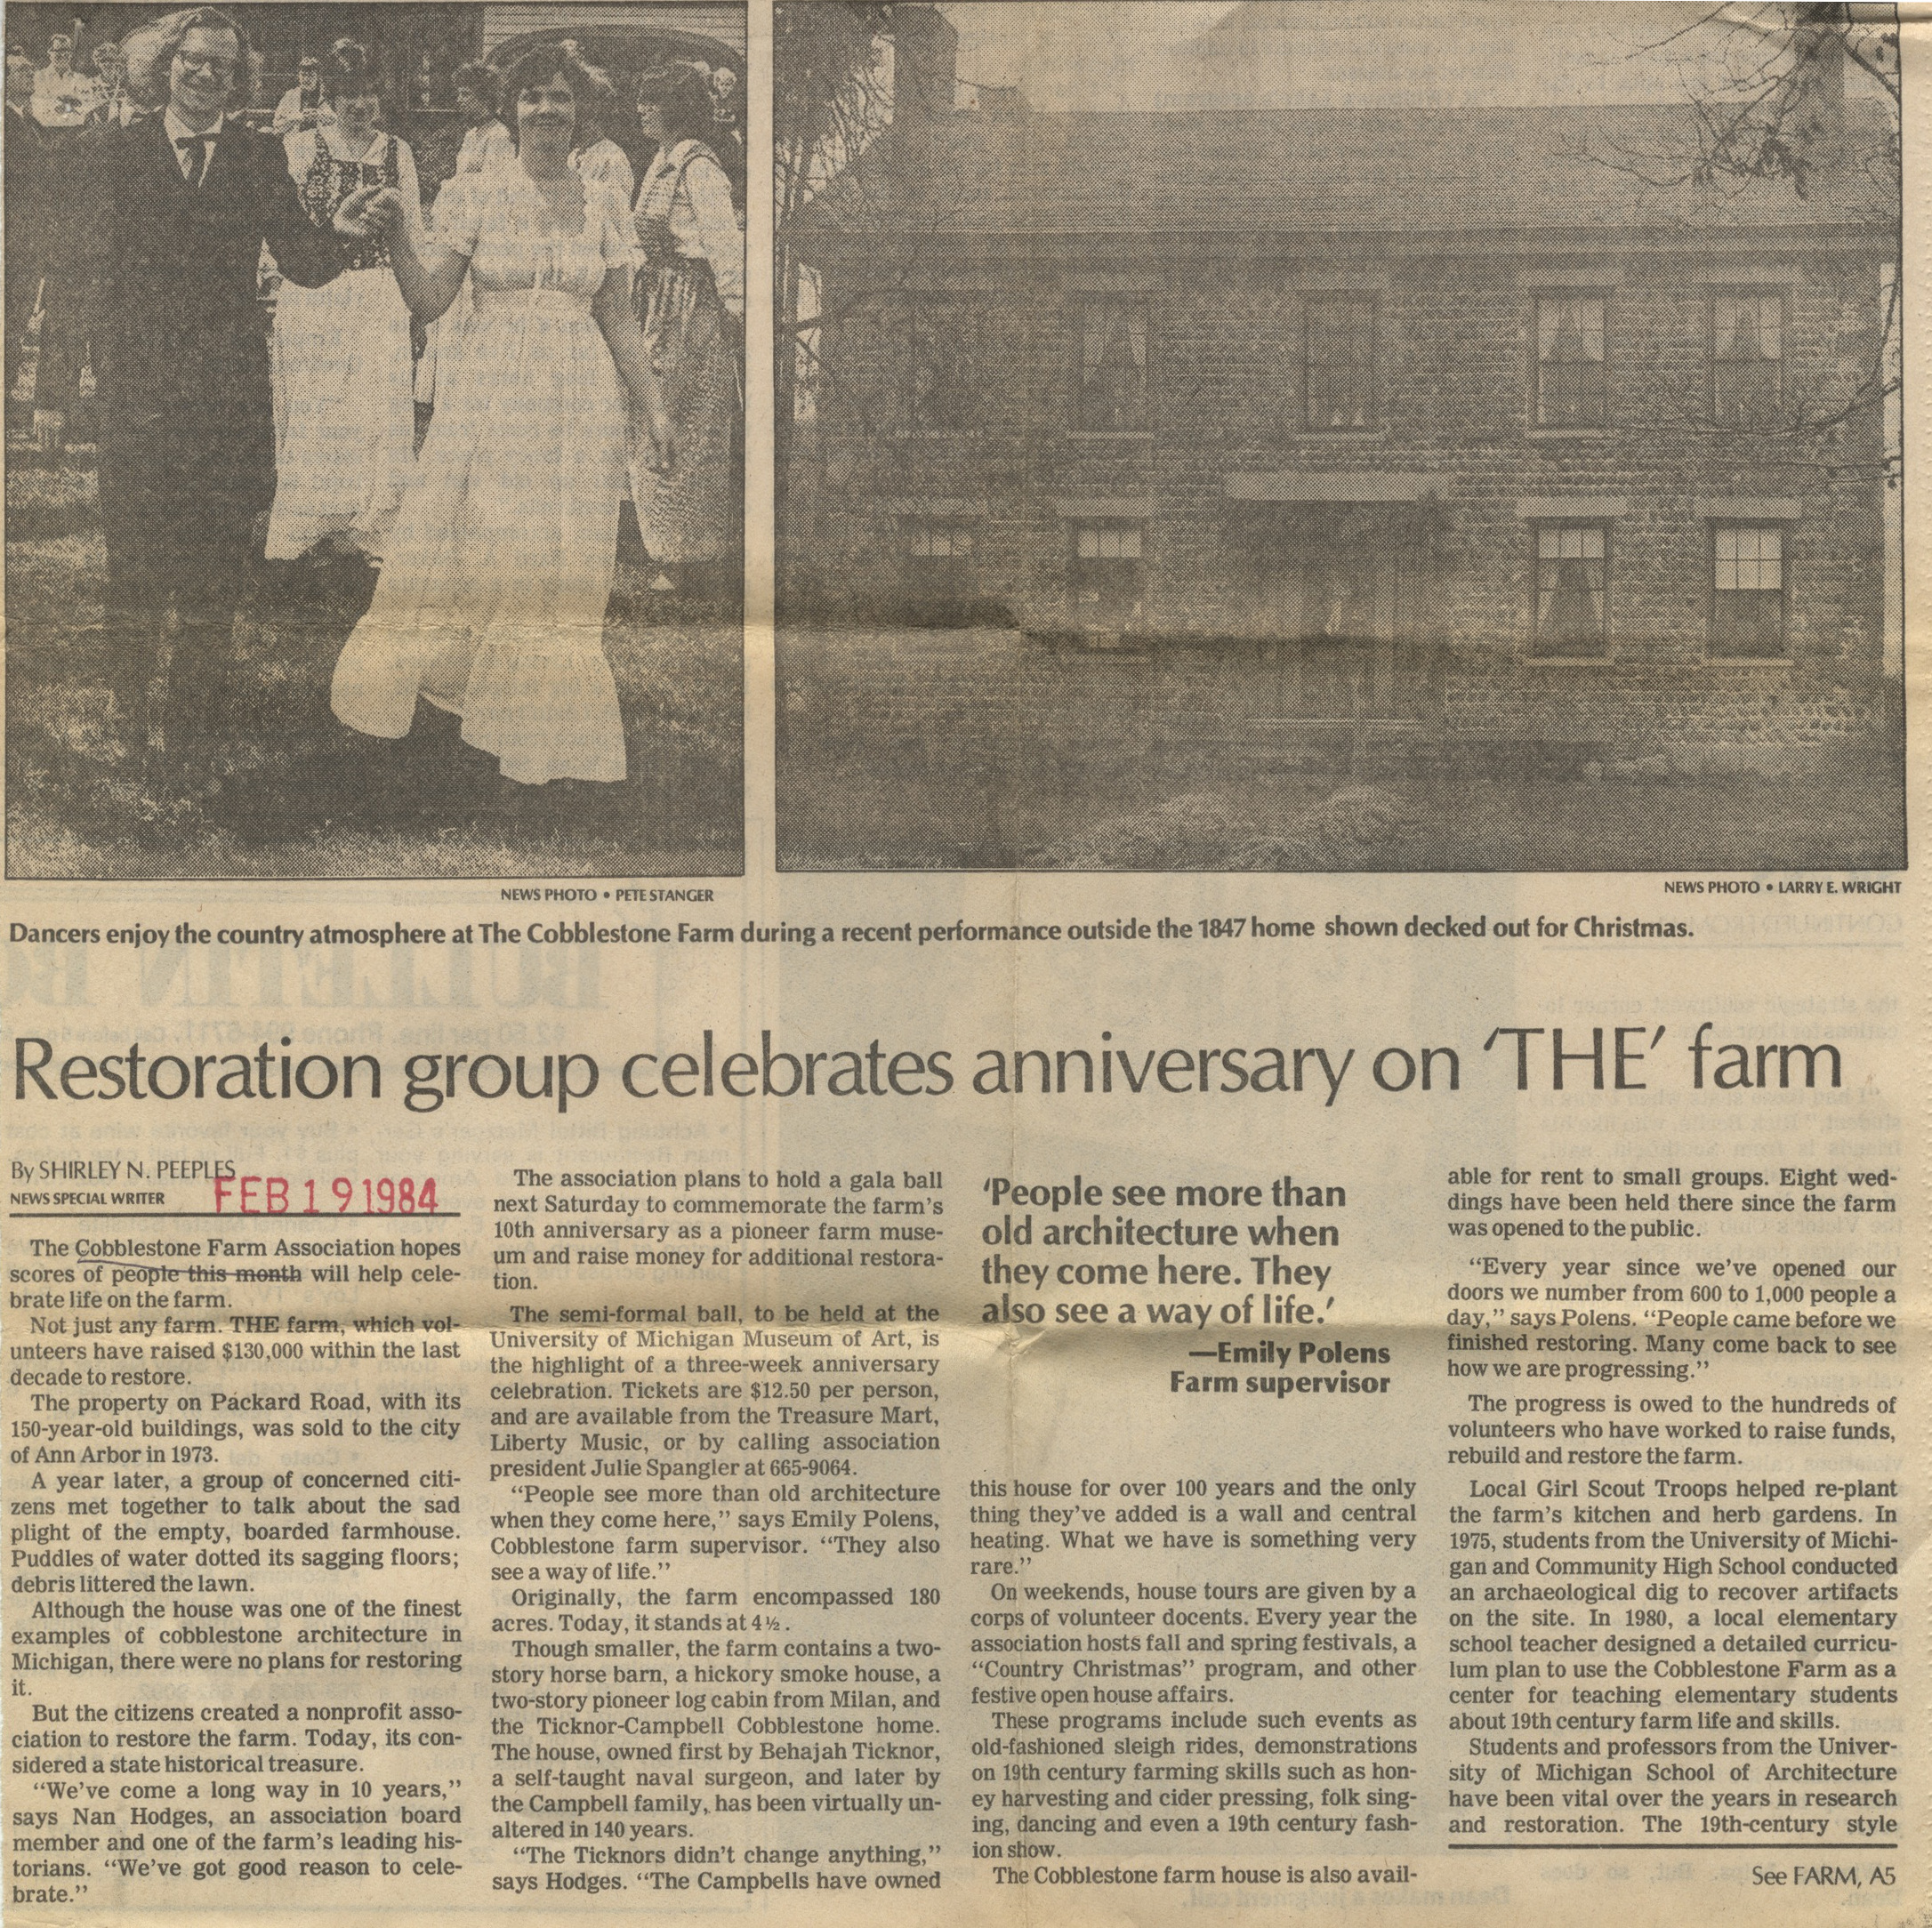 Restoration Group Celebrates Anniversary On 'THE' Farm image